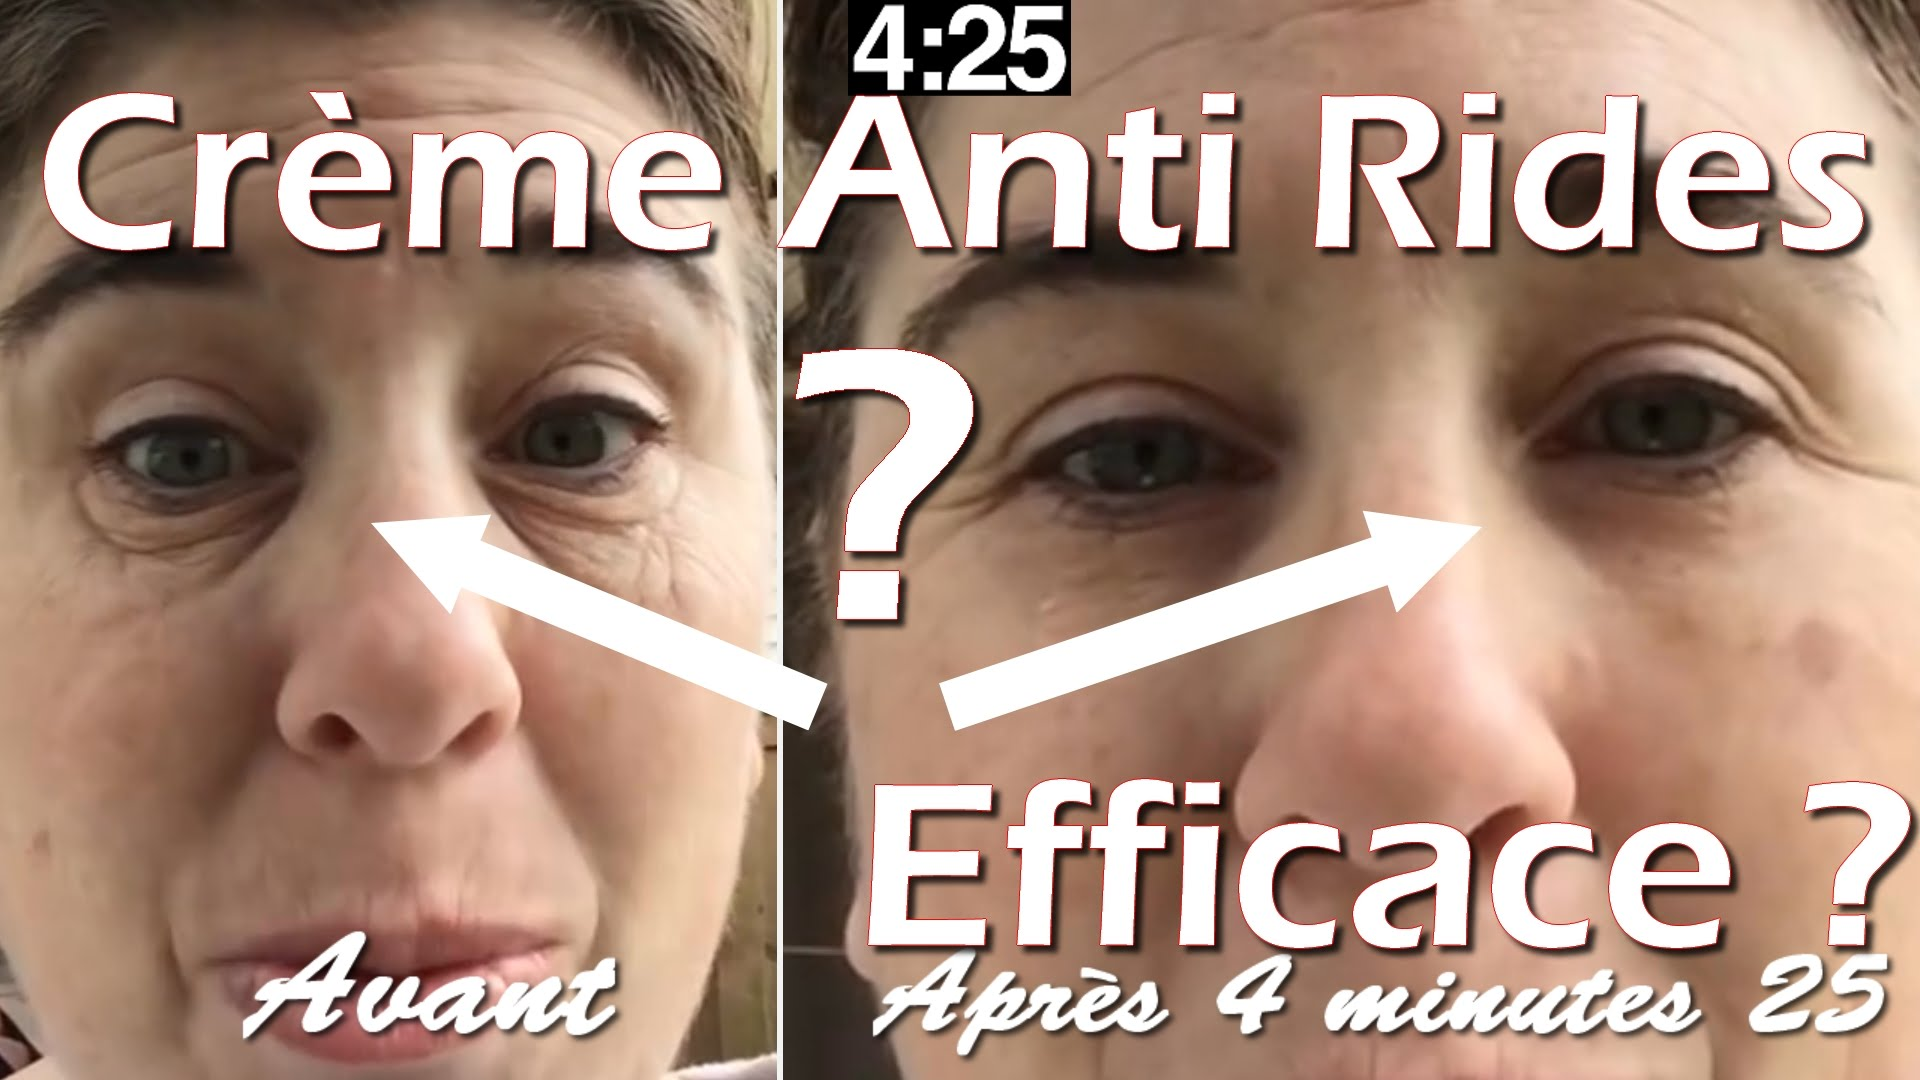 anti ride efficace et